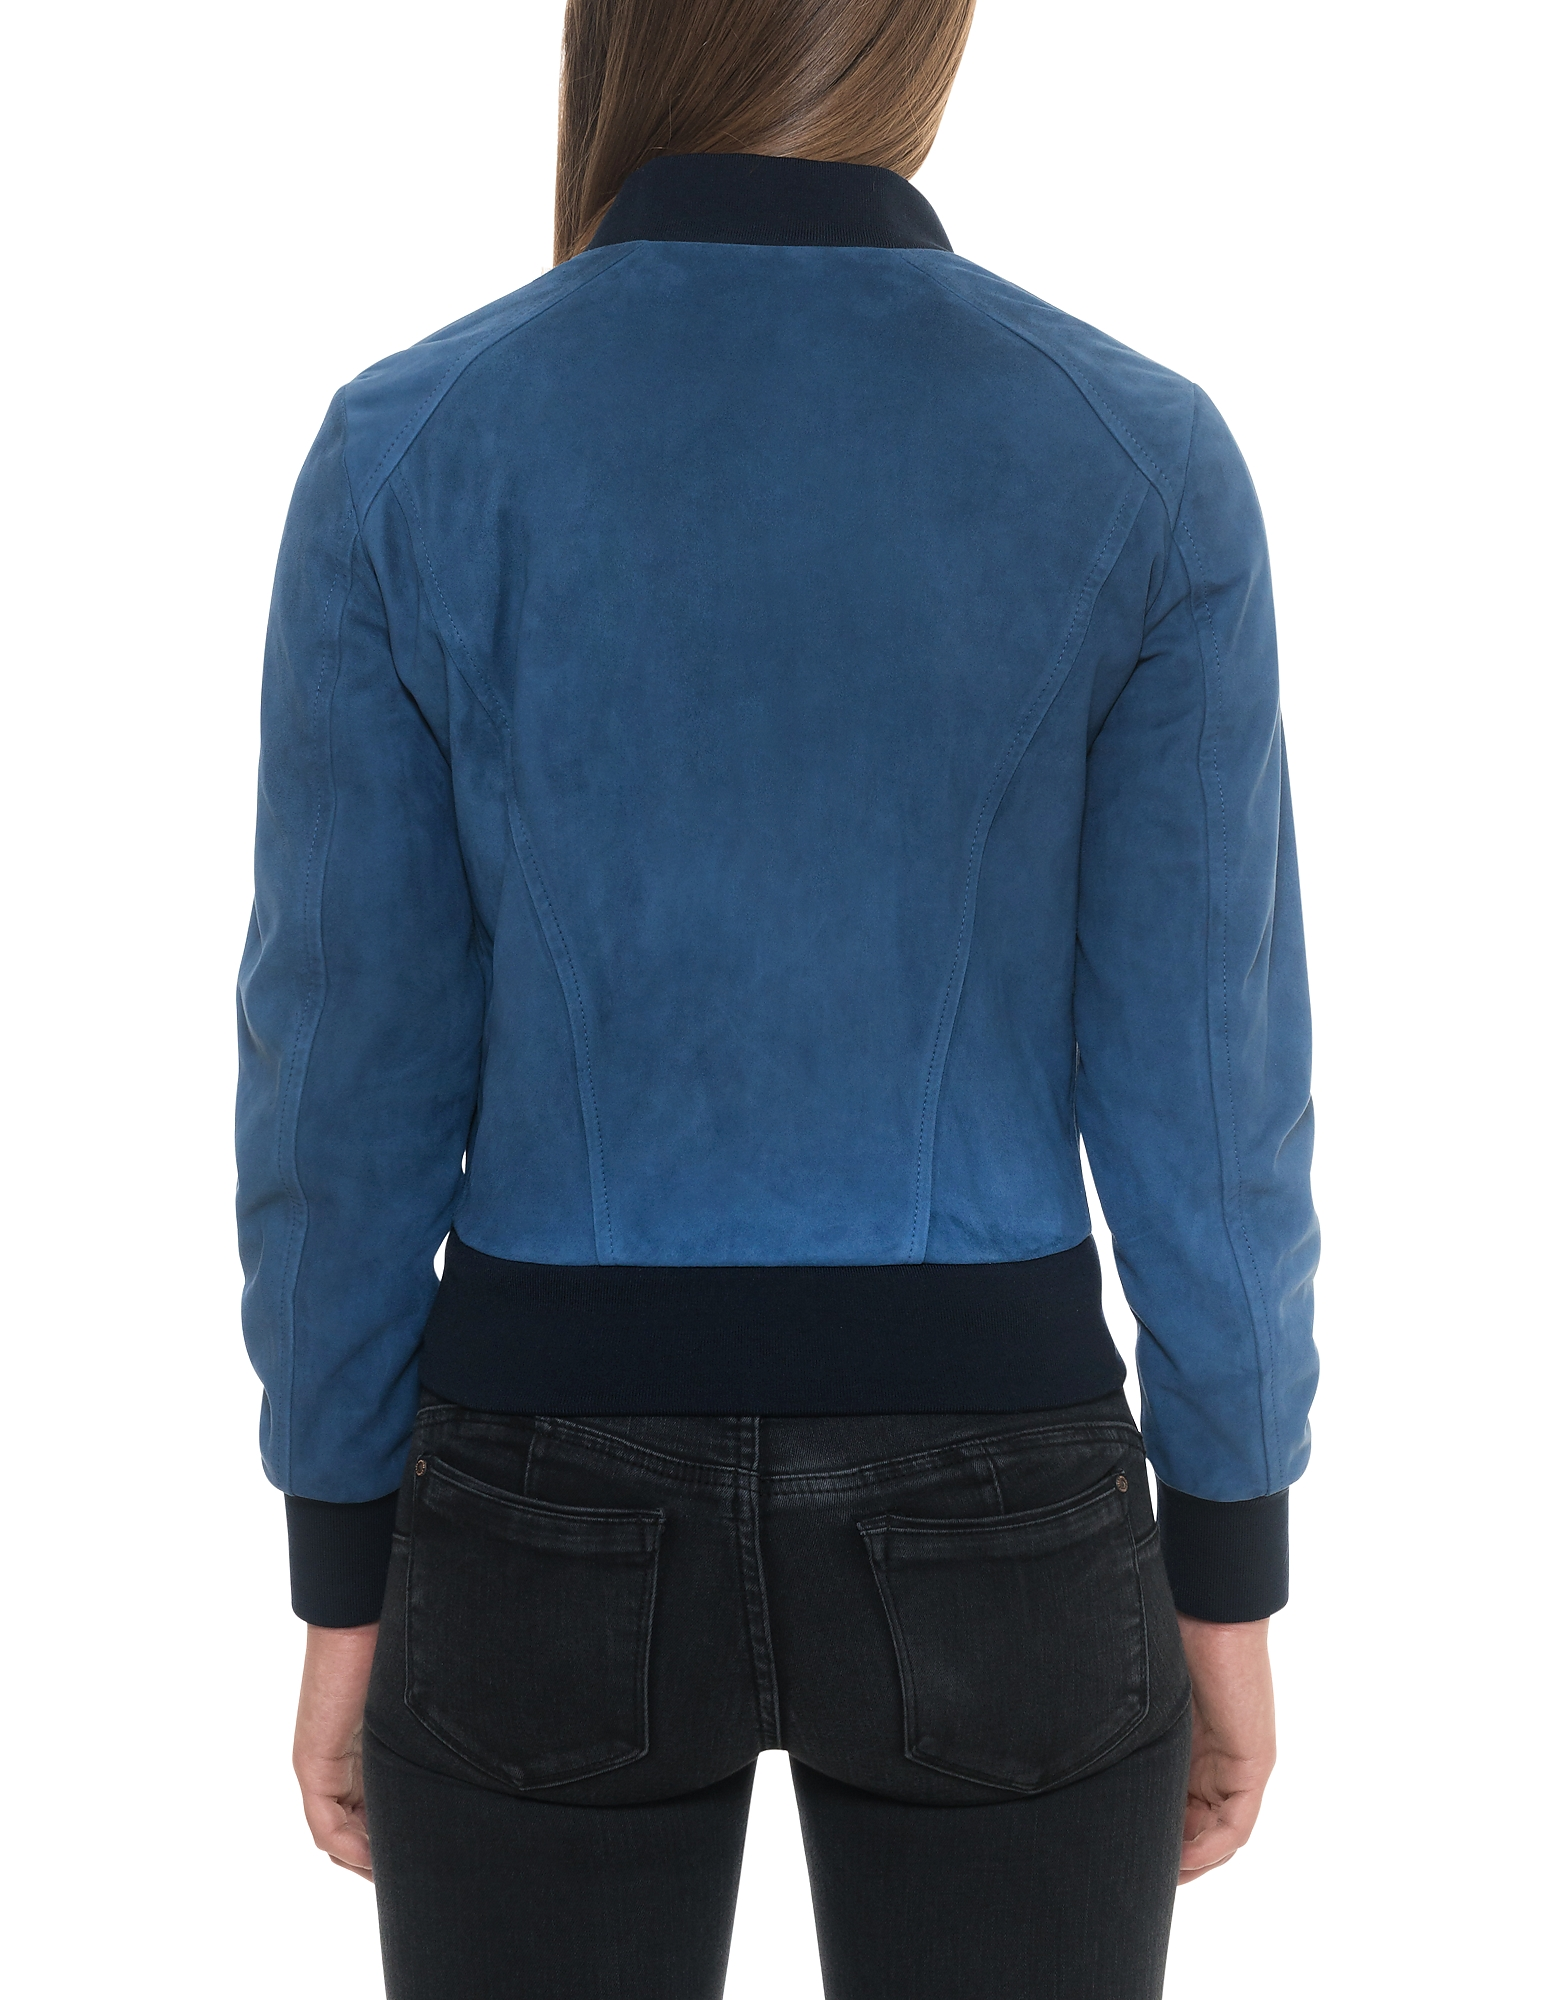 Blue Suede Women's Bomber Jacket от Forzieri.com INT